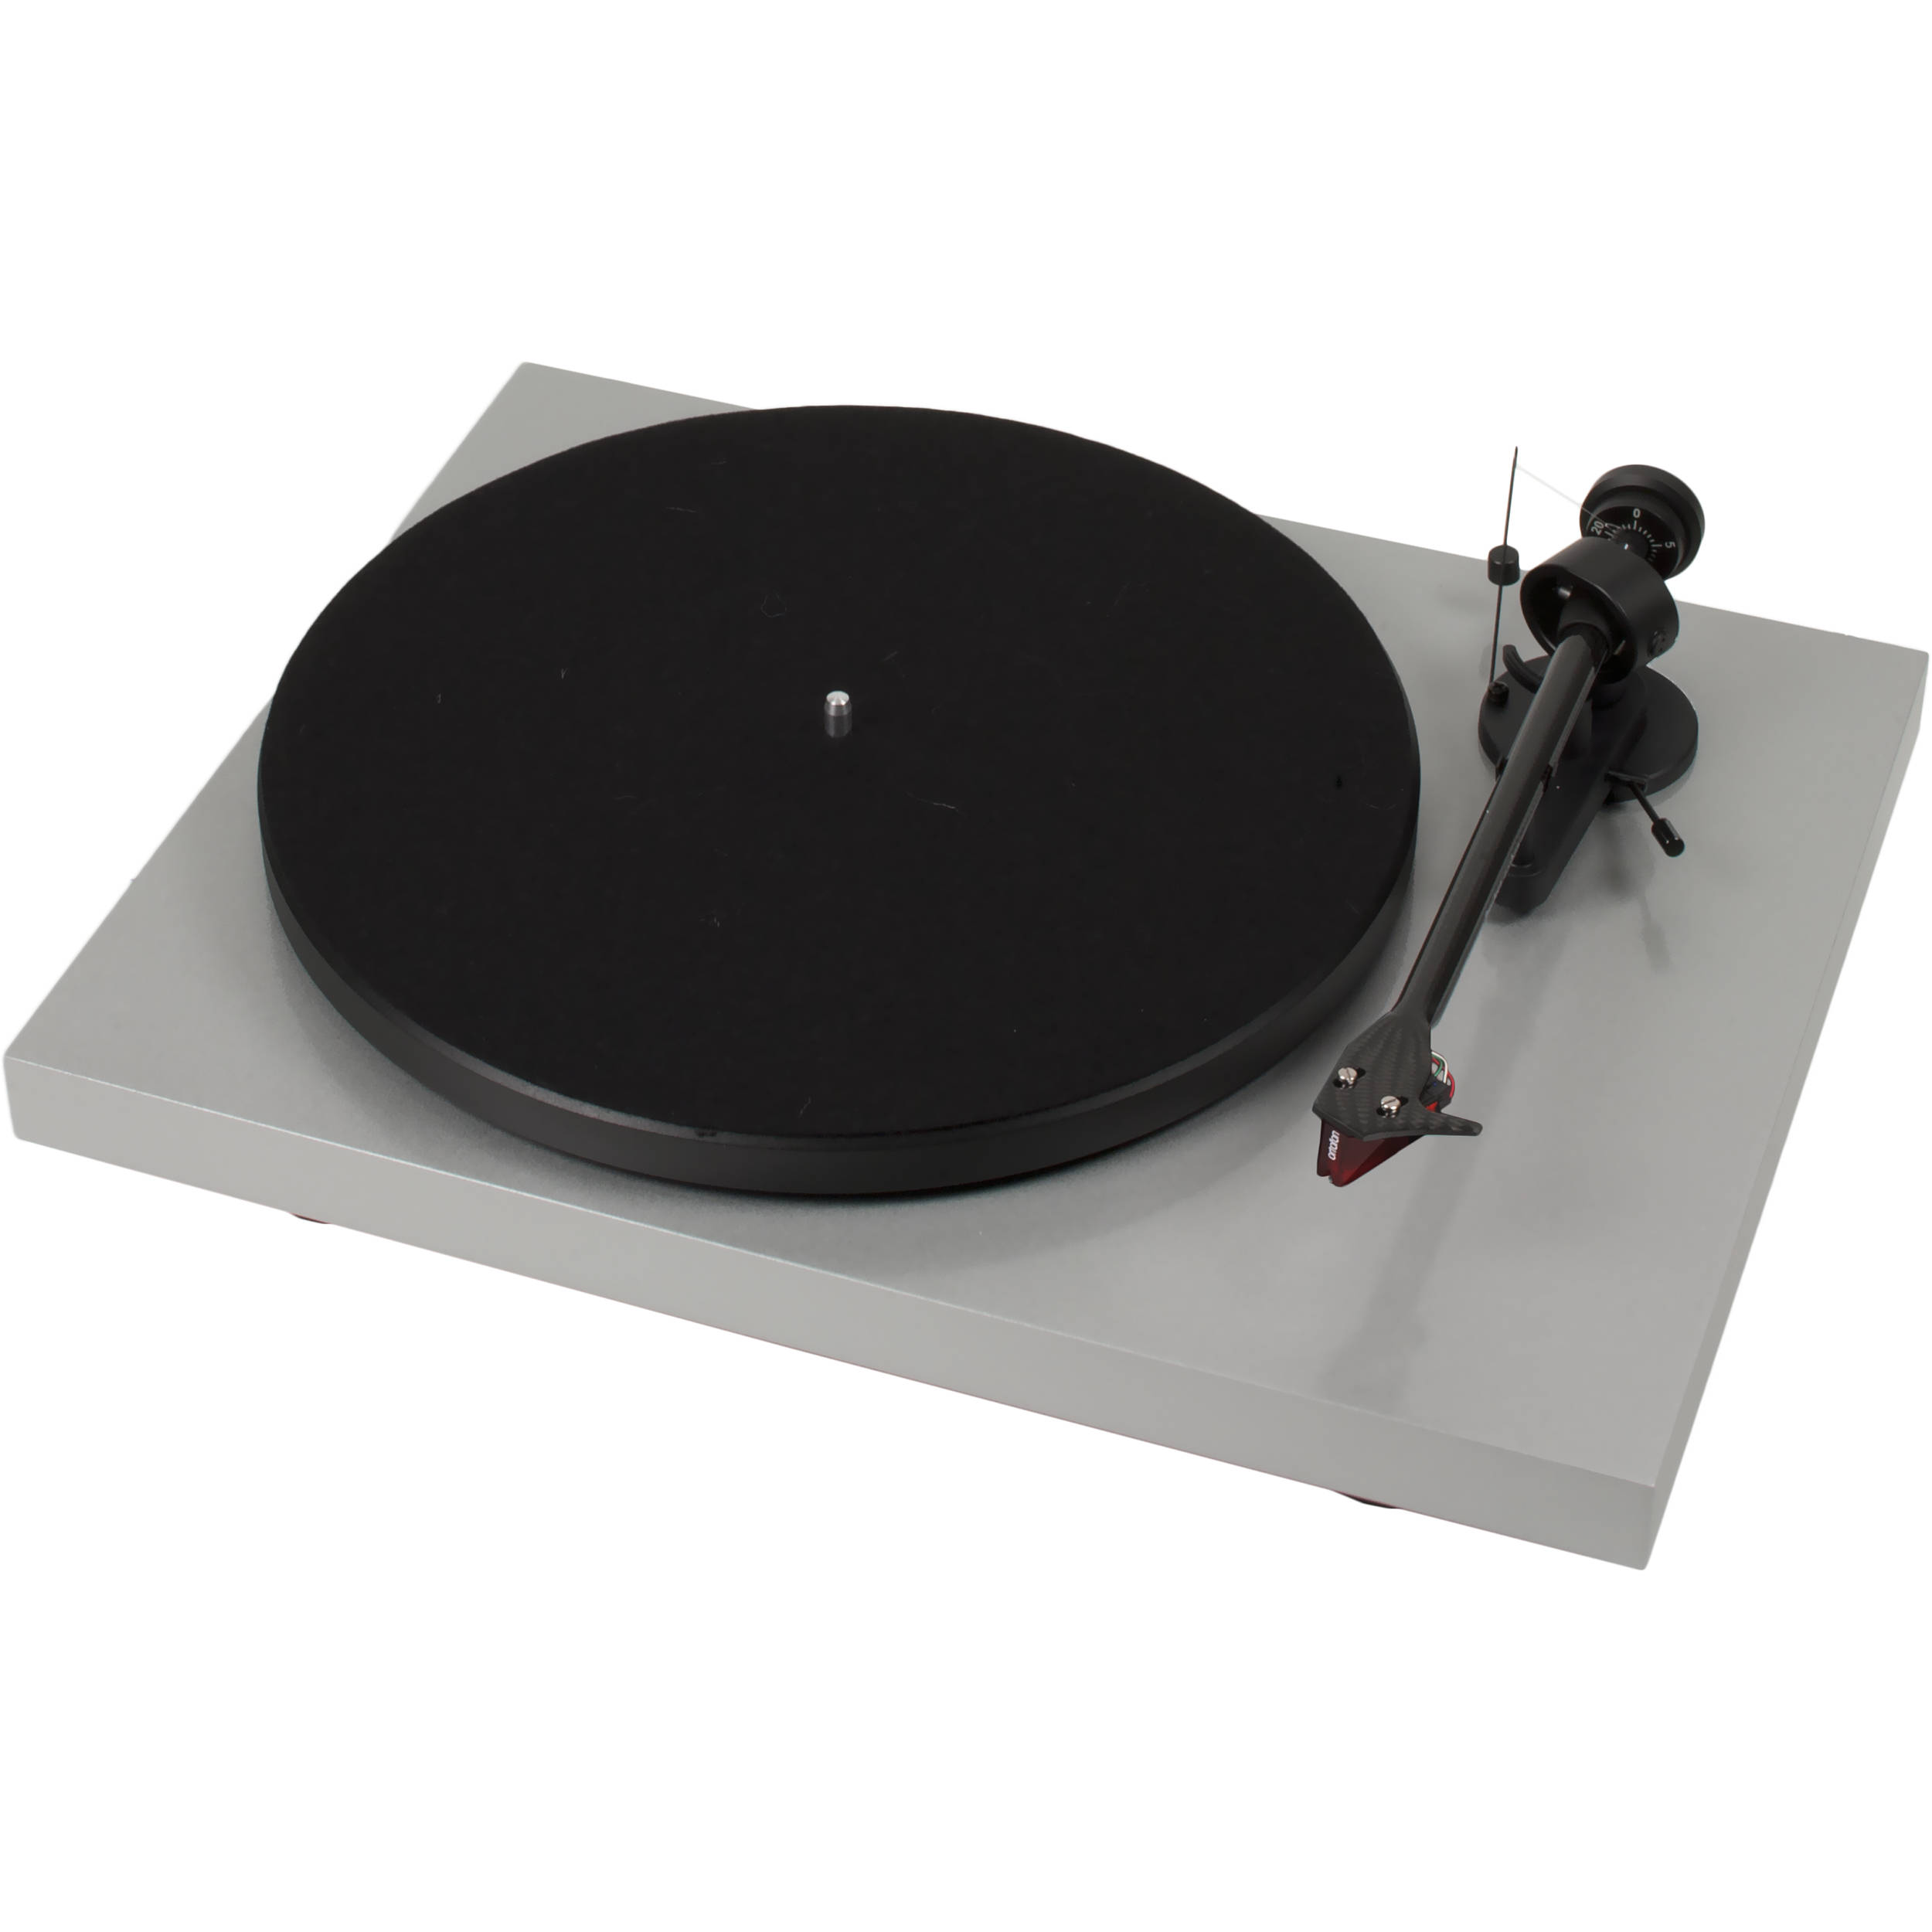 Pro-Ject Audio Systems Debut Carbon DC Turntable with 8 6